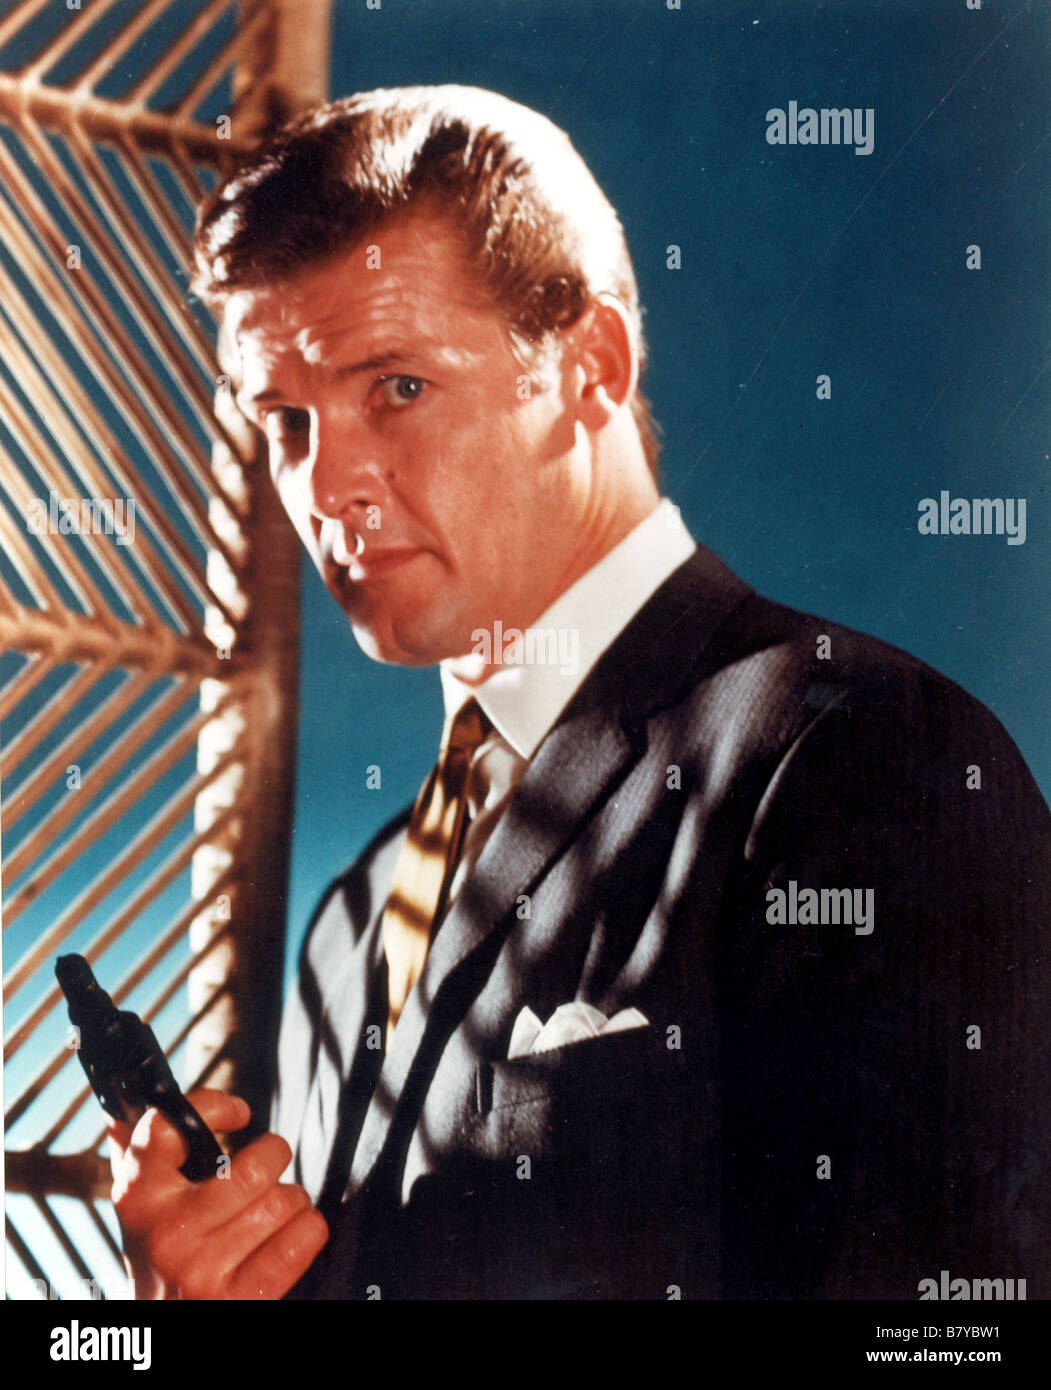 The Saint  TV series 1962 -1969 USA Director: John Ainsworth, Robert Asher Roger Moore - Stock Image